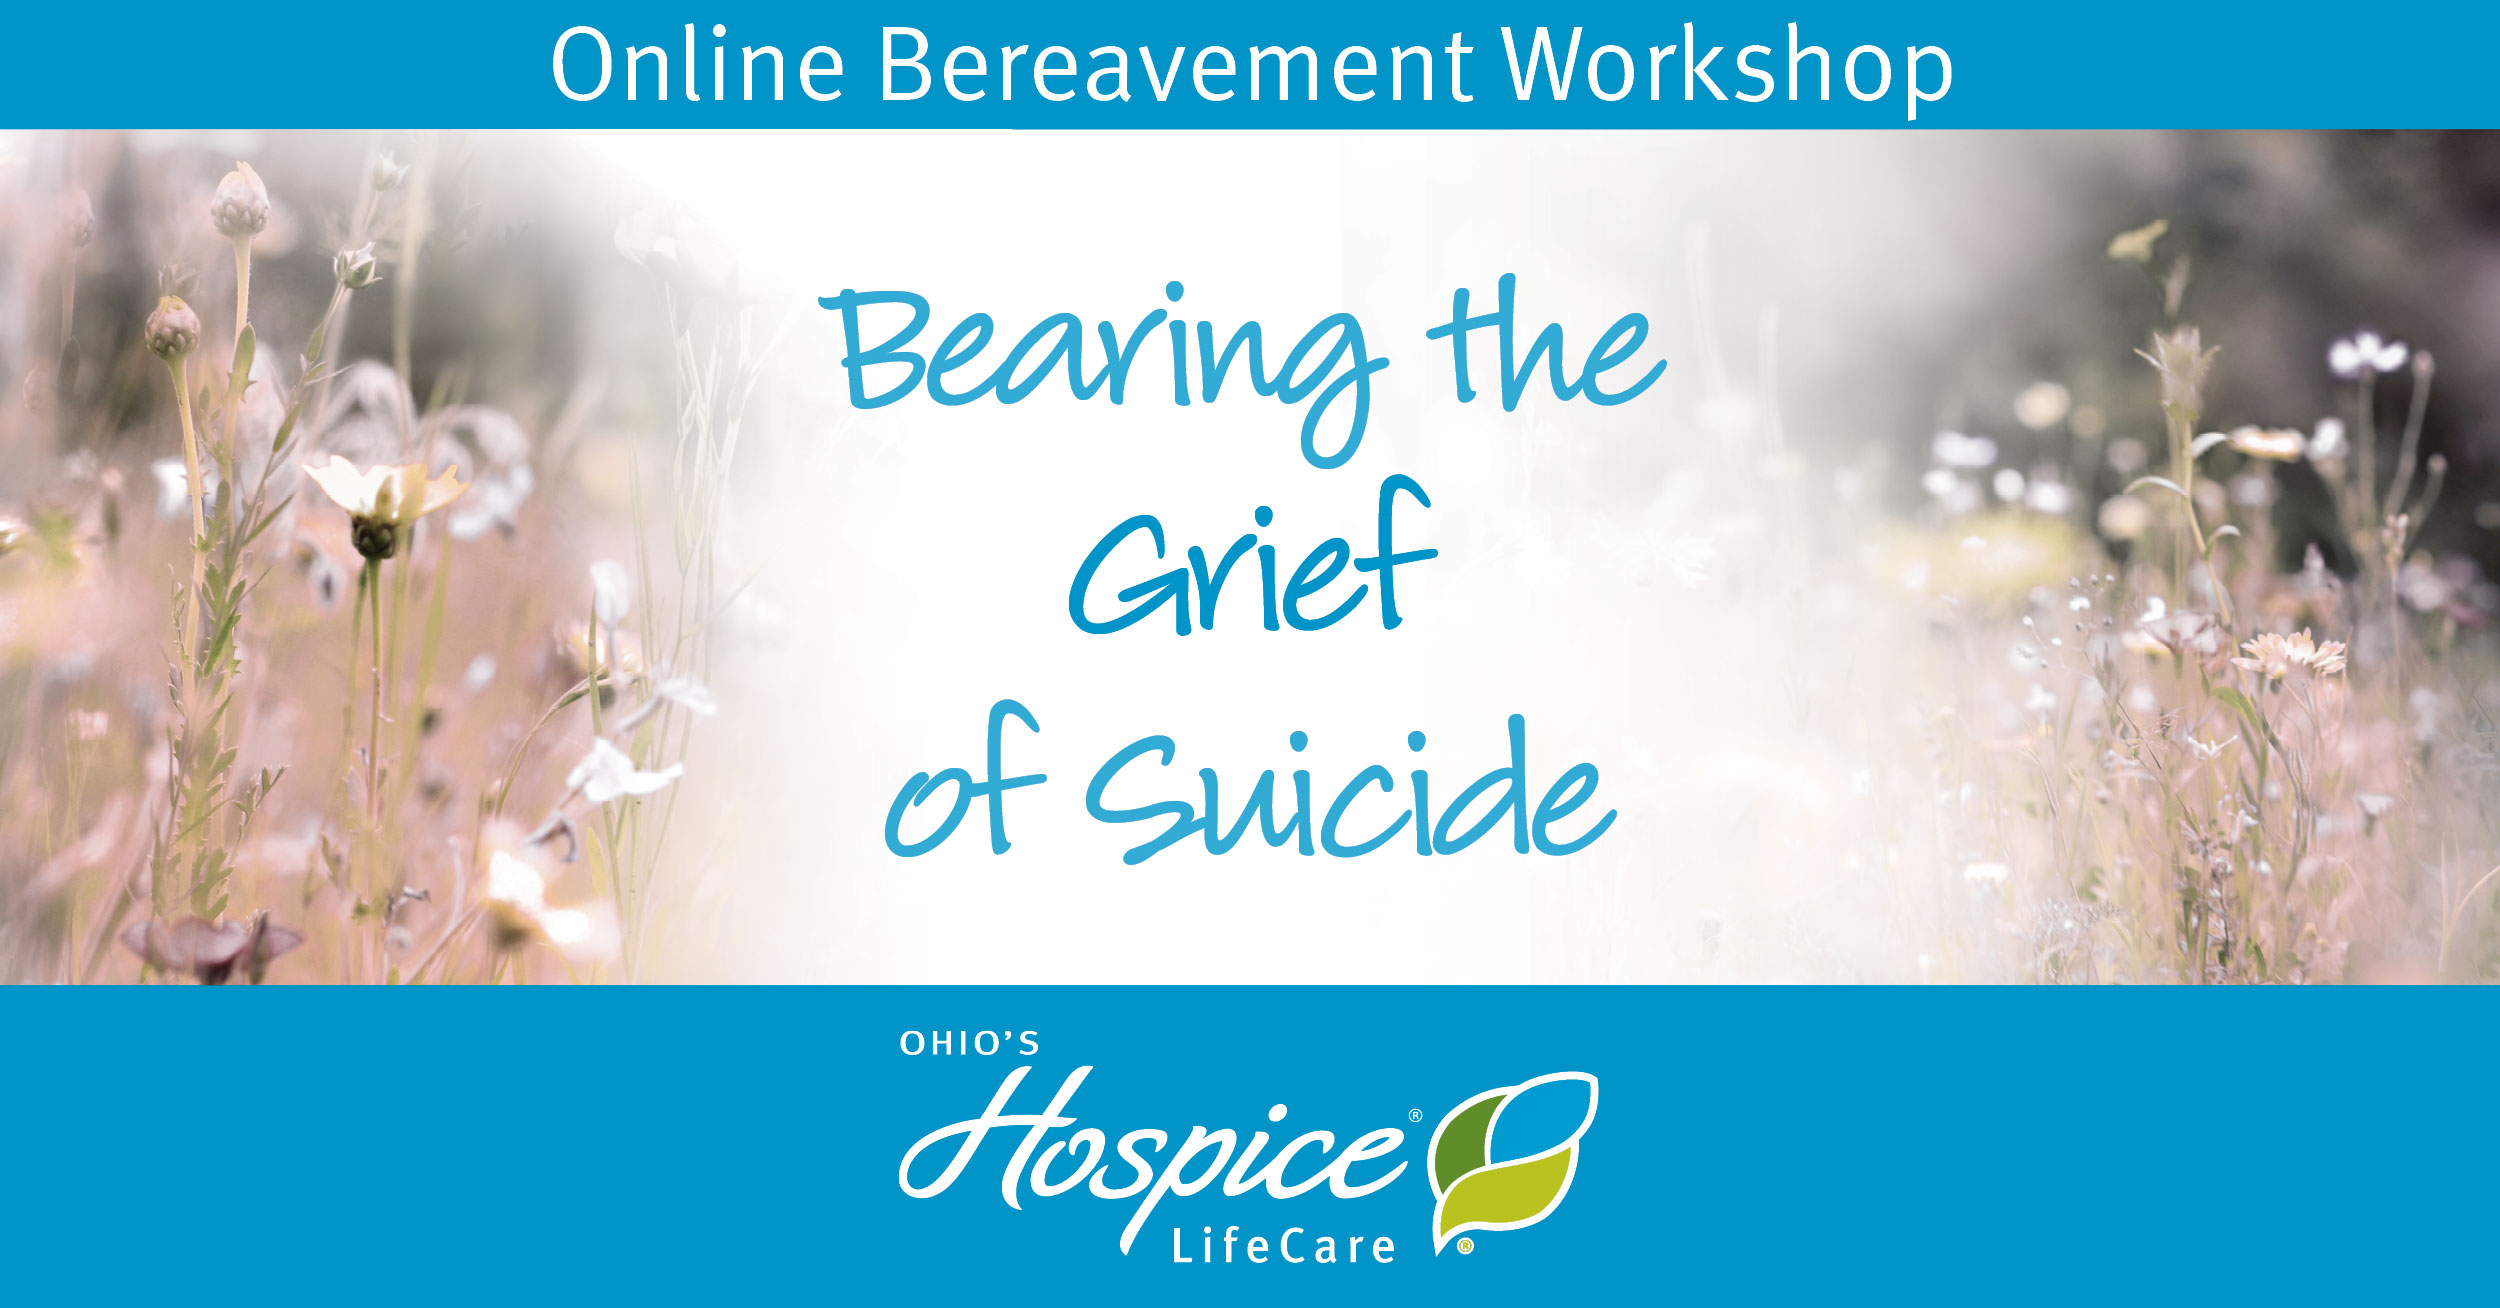 Bearing the Grief of Suicide